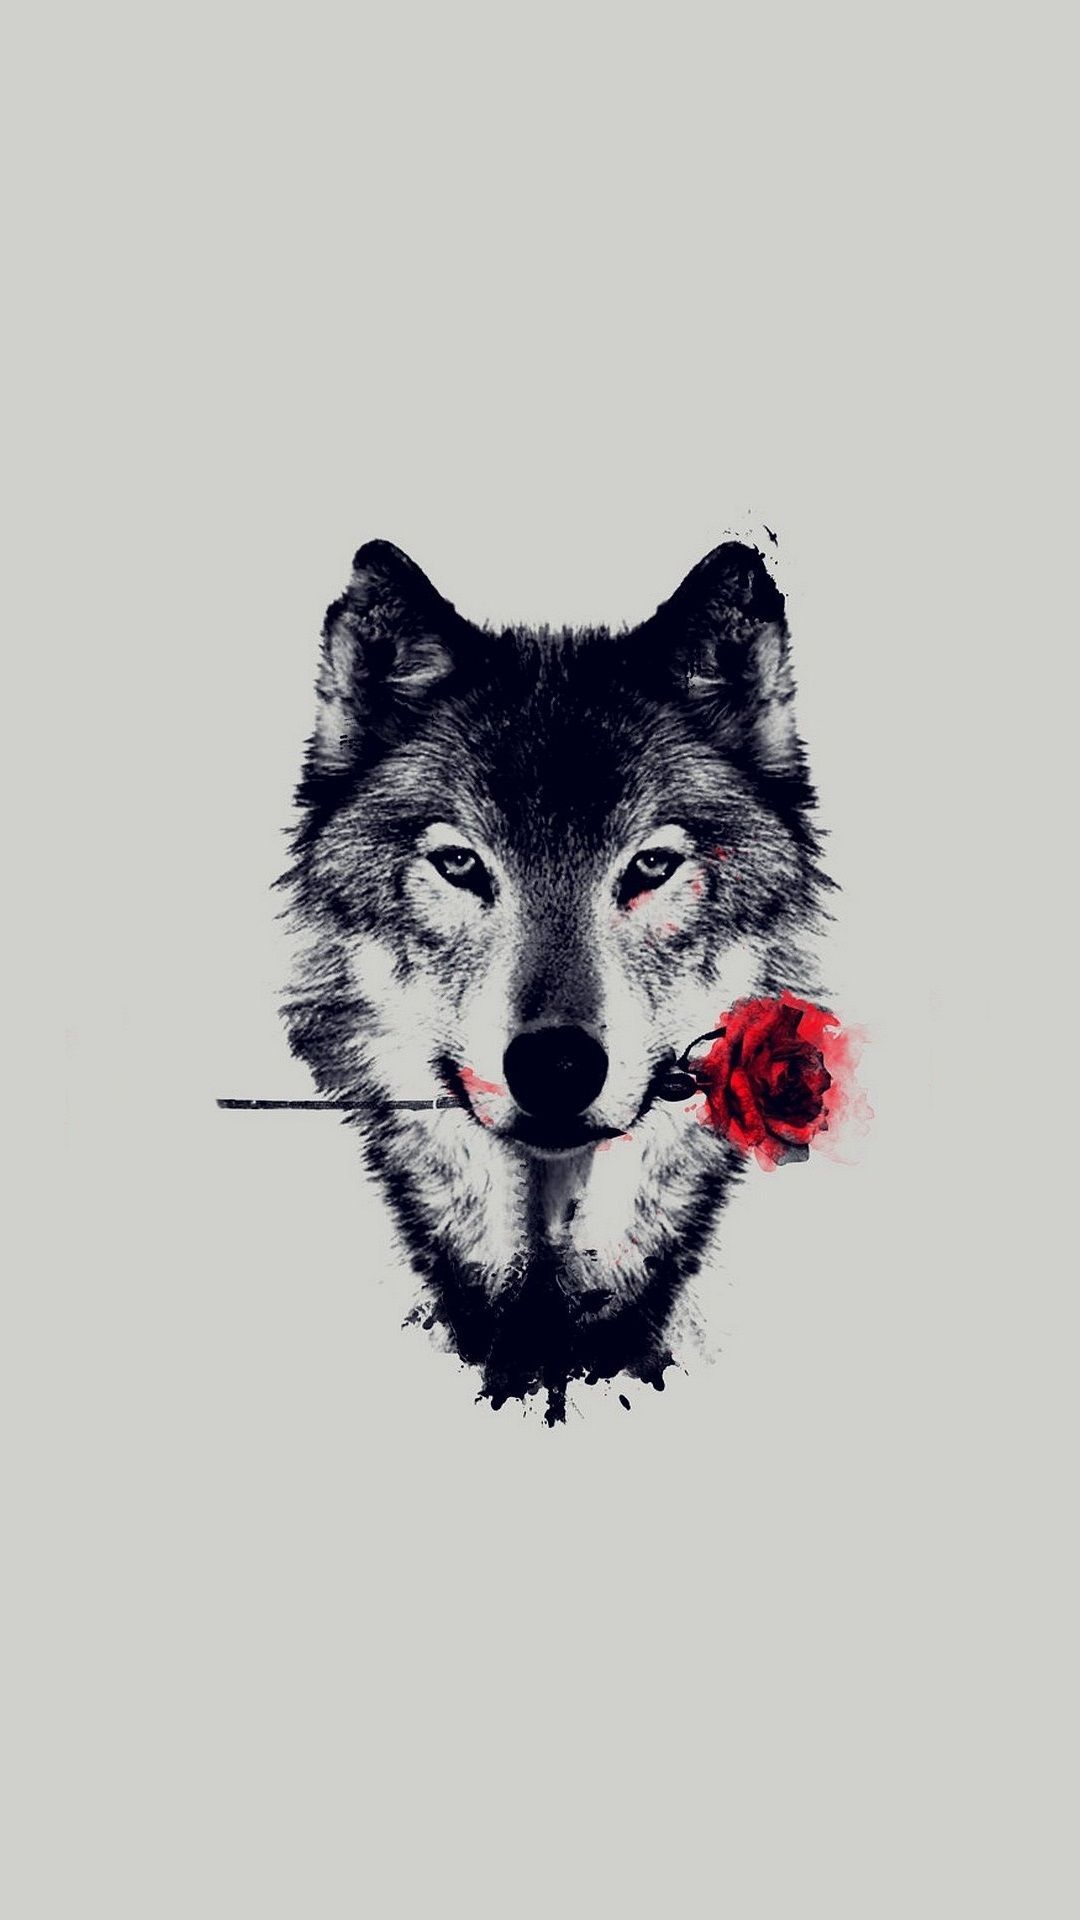 1080x1920 Wolf Red Rose Art Wallpaper iPhone - 2018 iPhone Wallpapers | Rose ...